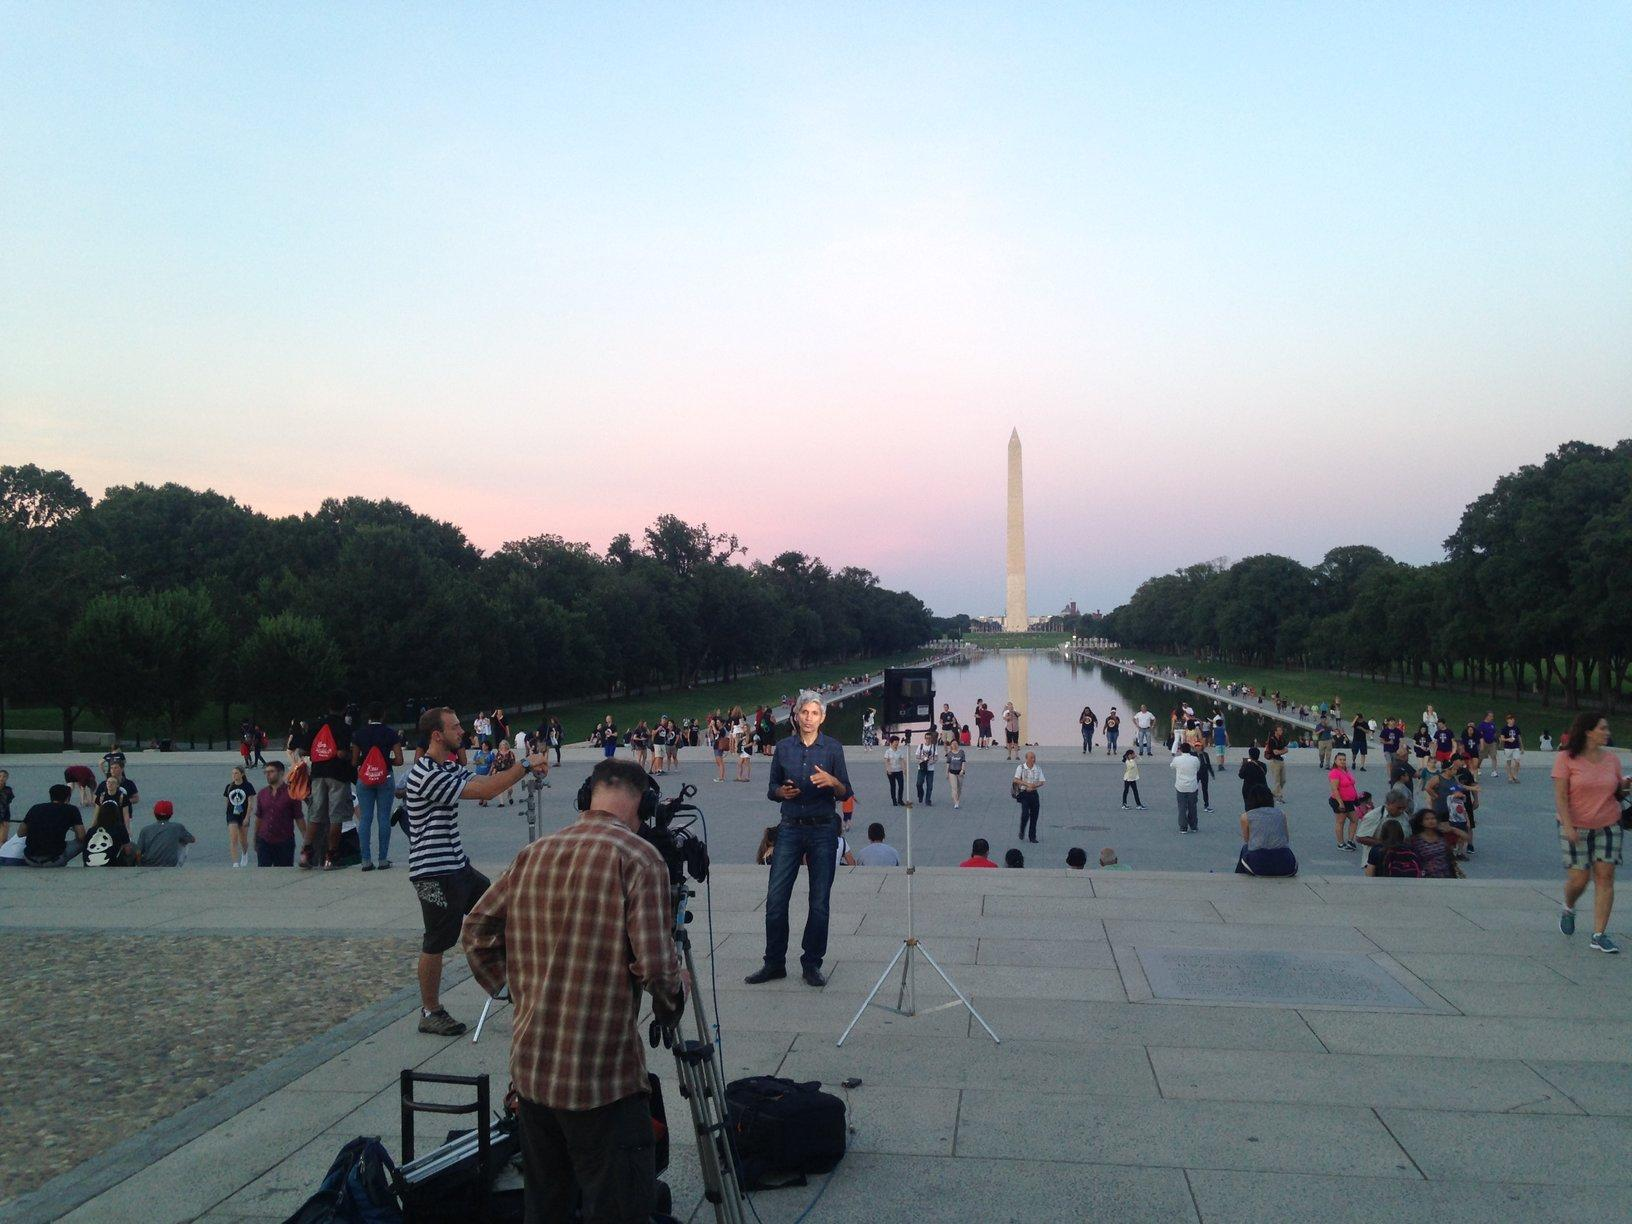 THE REAL MALL OF AMERICA: students, residents, and lawmakers take in sunset over the National Mall